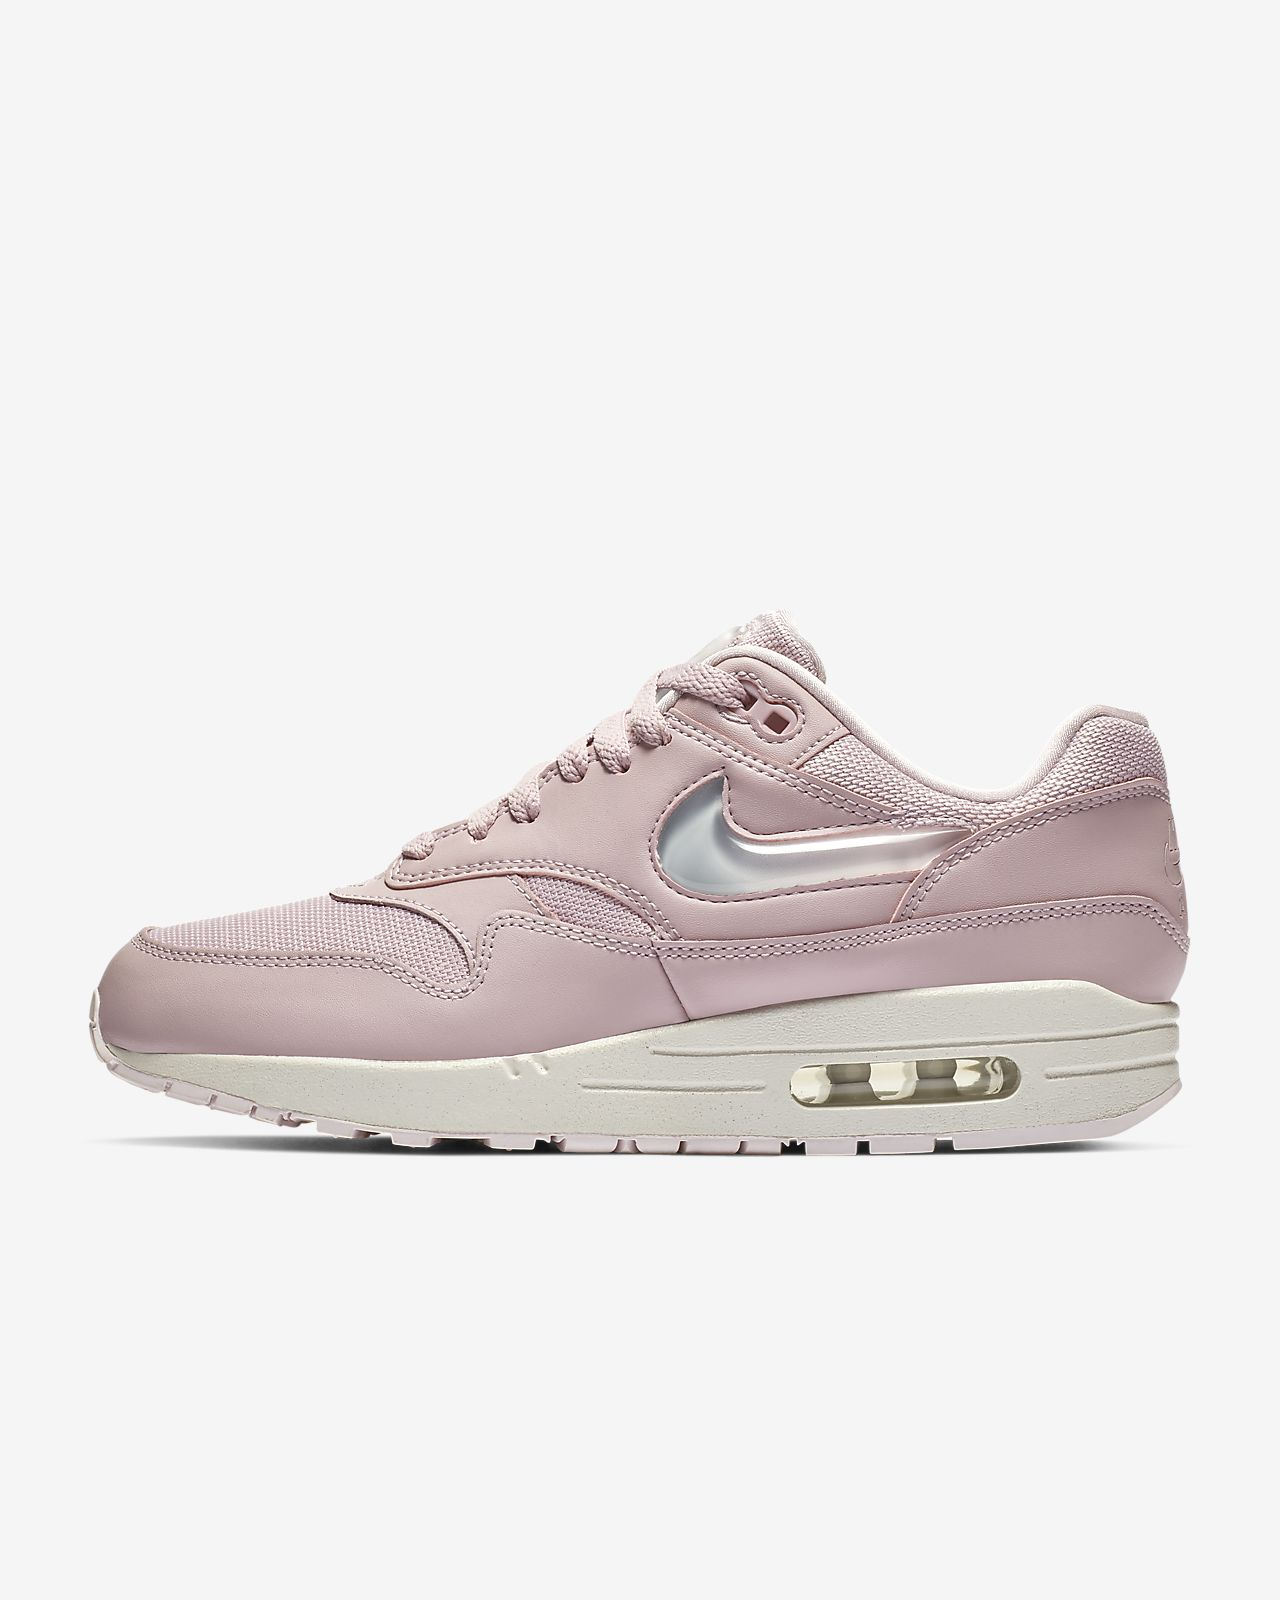 half off ee127 9b780 ... Nike Air Max 1 Premium Women s Shoe